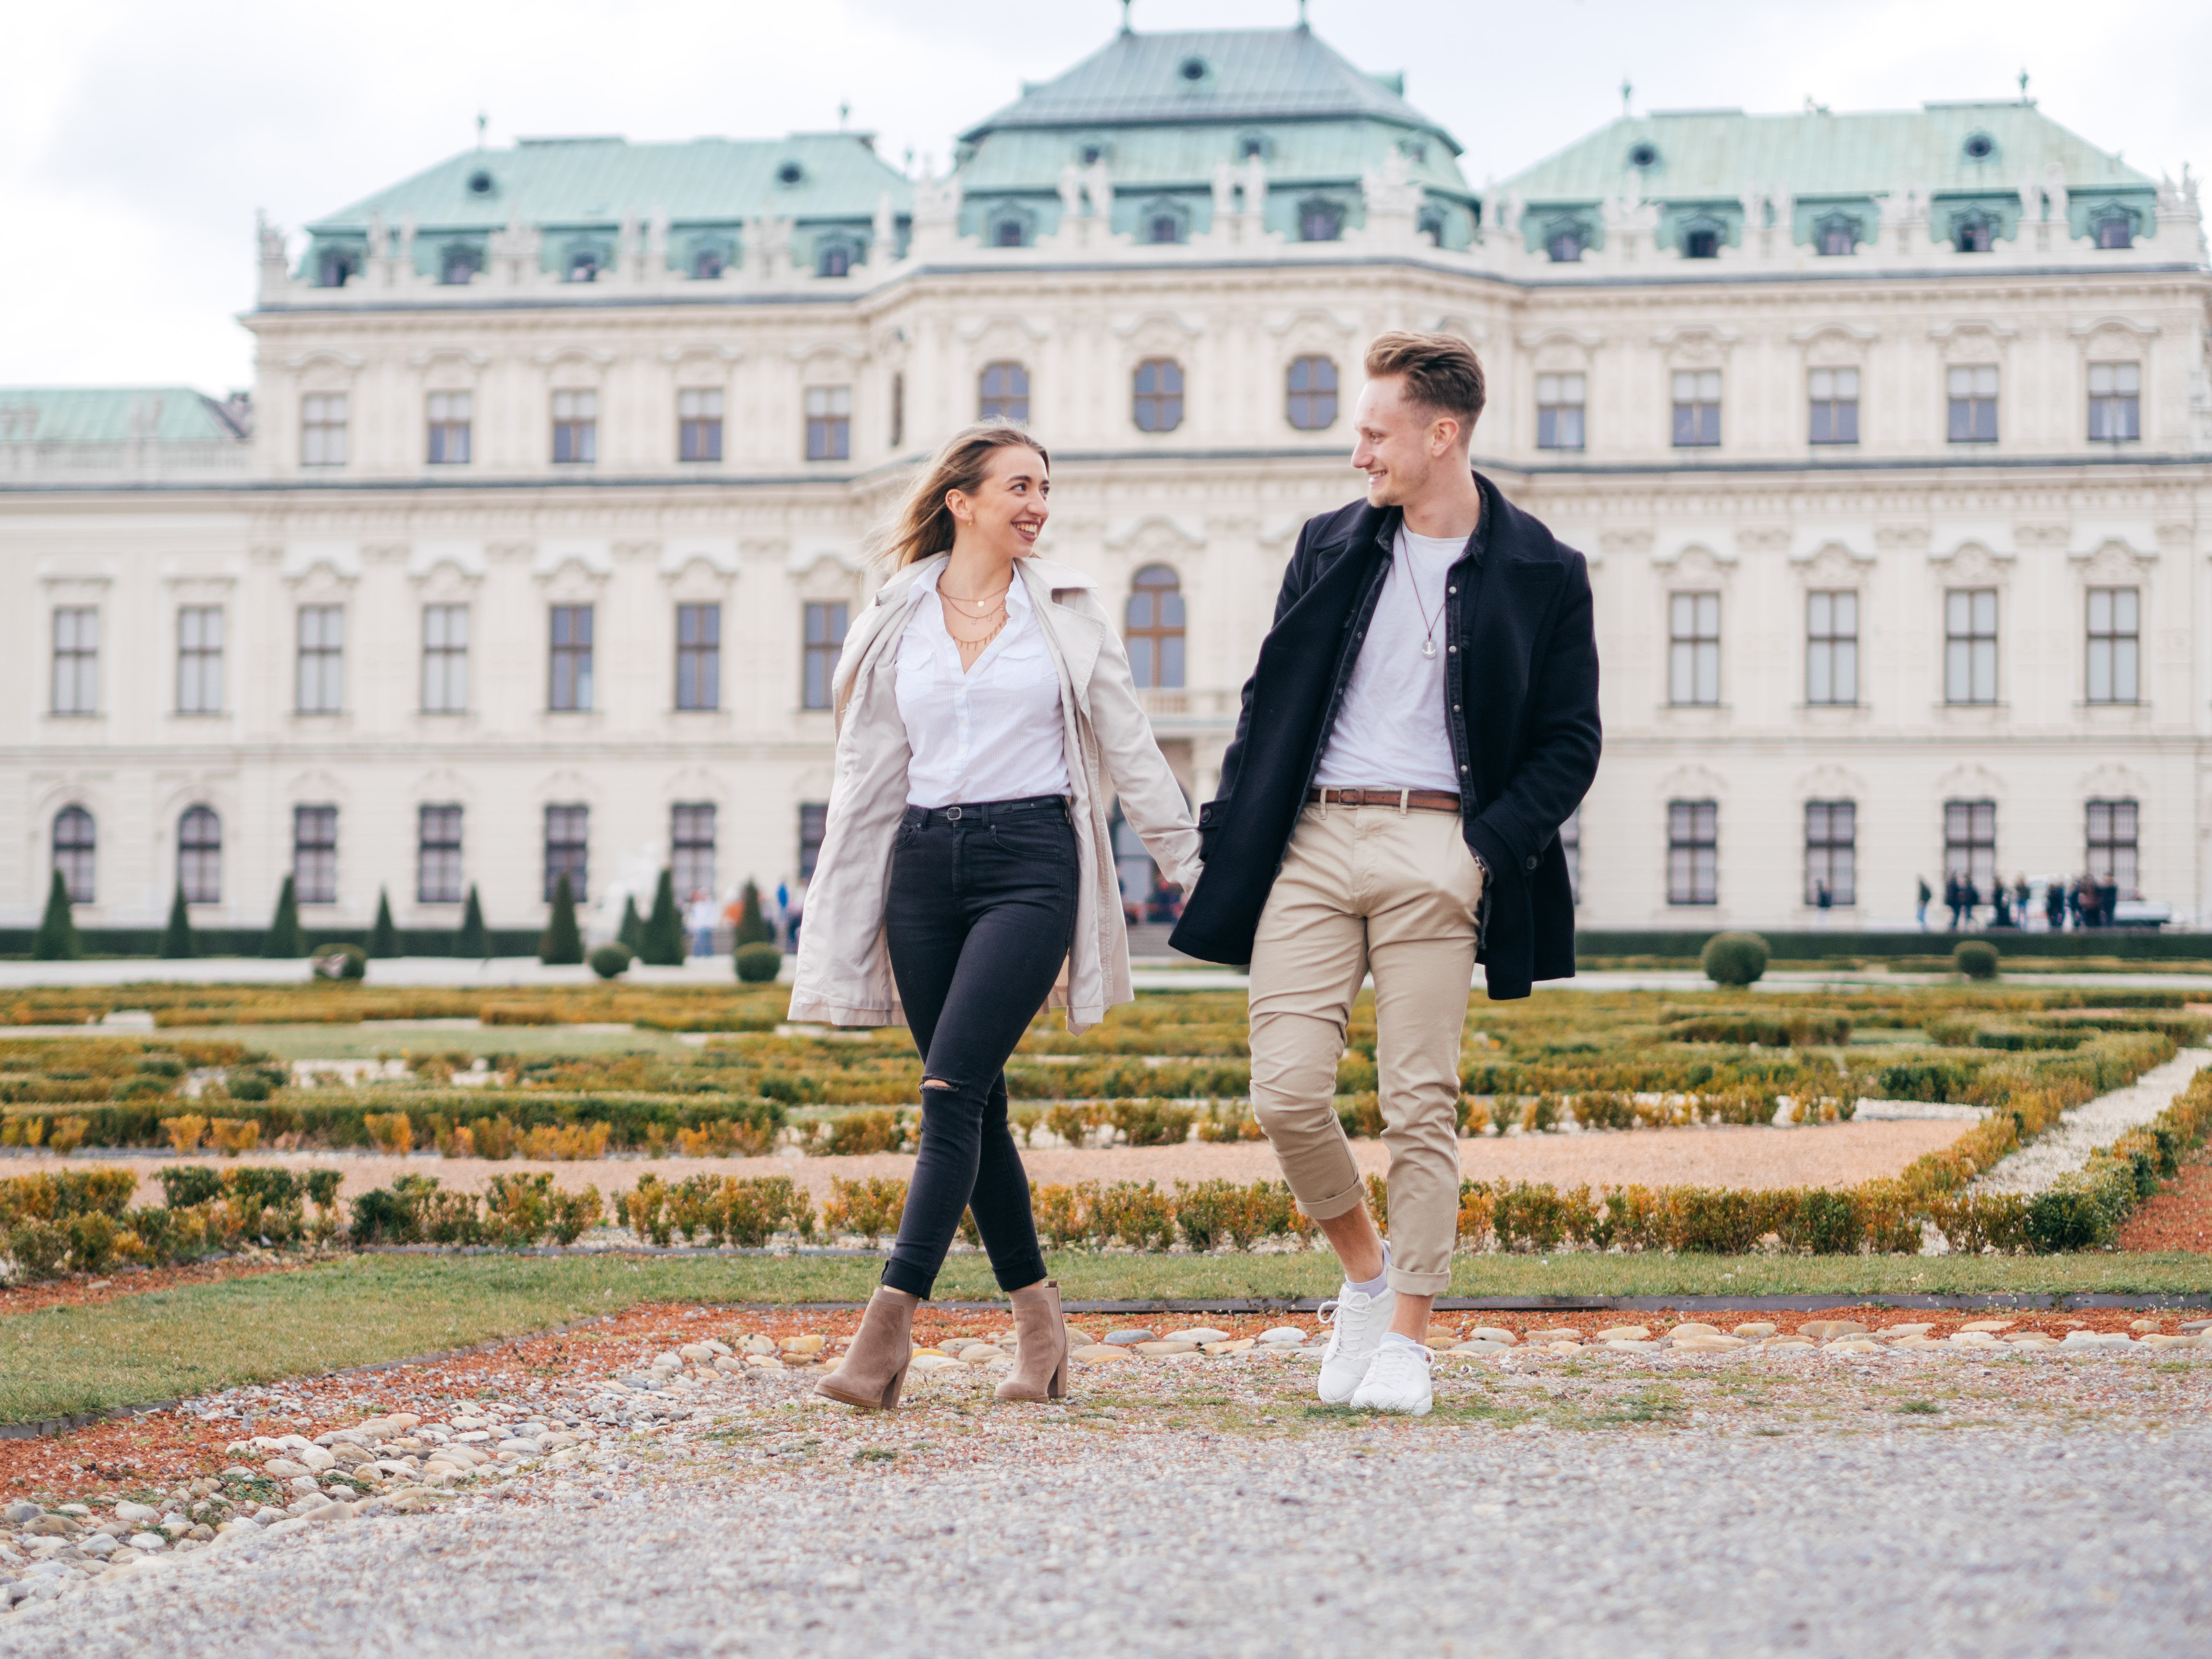 Belvedere Love Story - couple photography Vienna